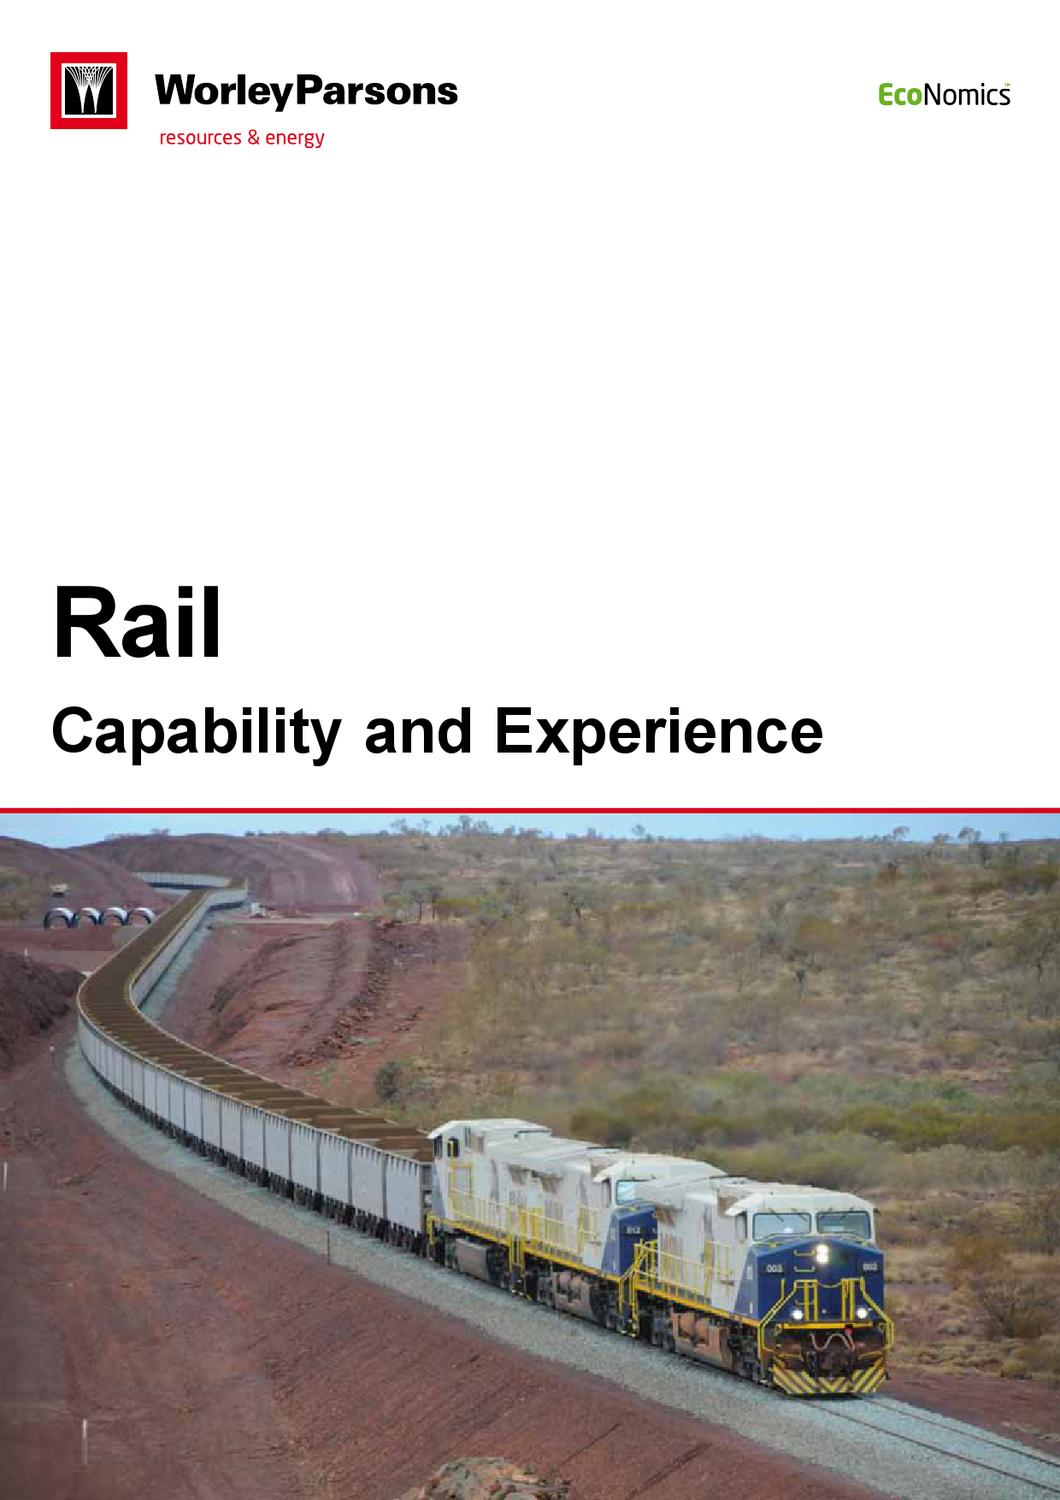 WorleyParsons Transport and Rail by WorleyParsons - issuu